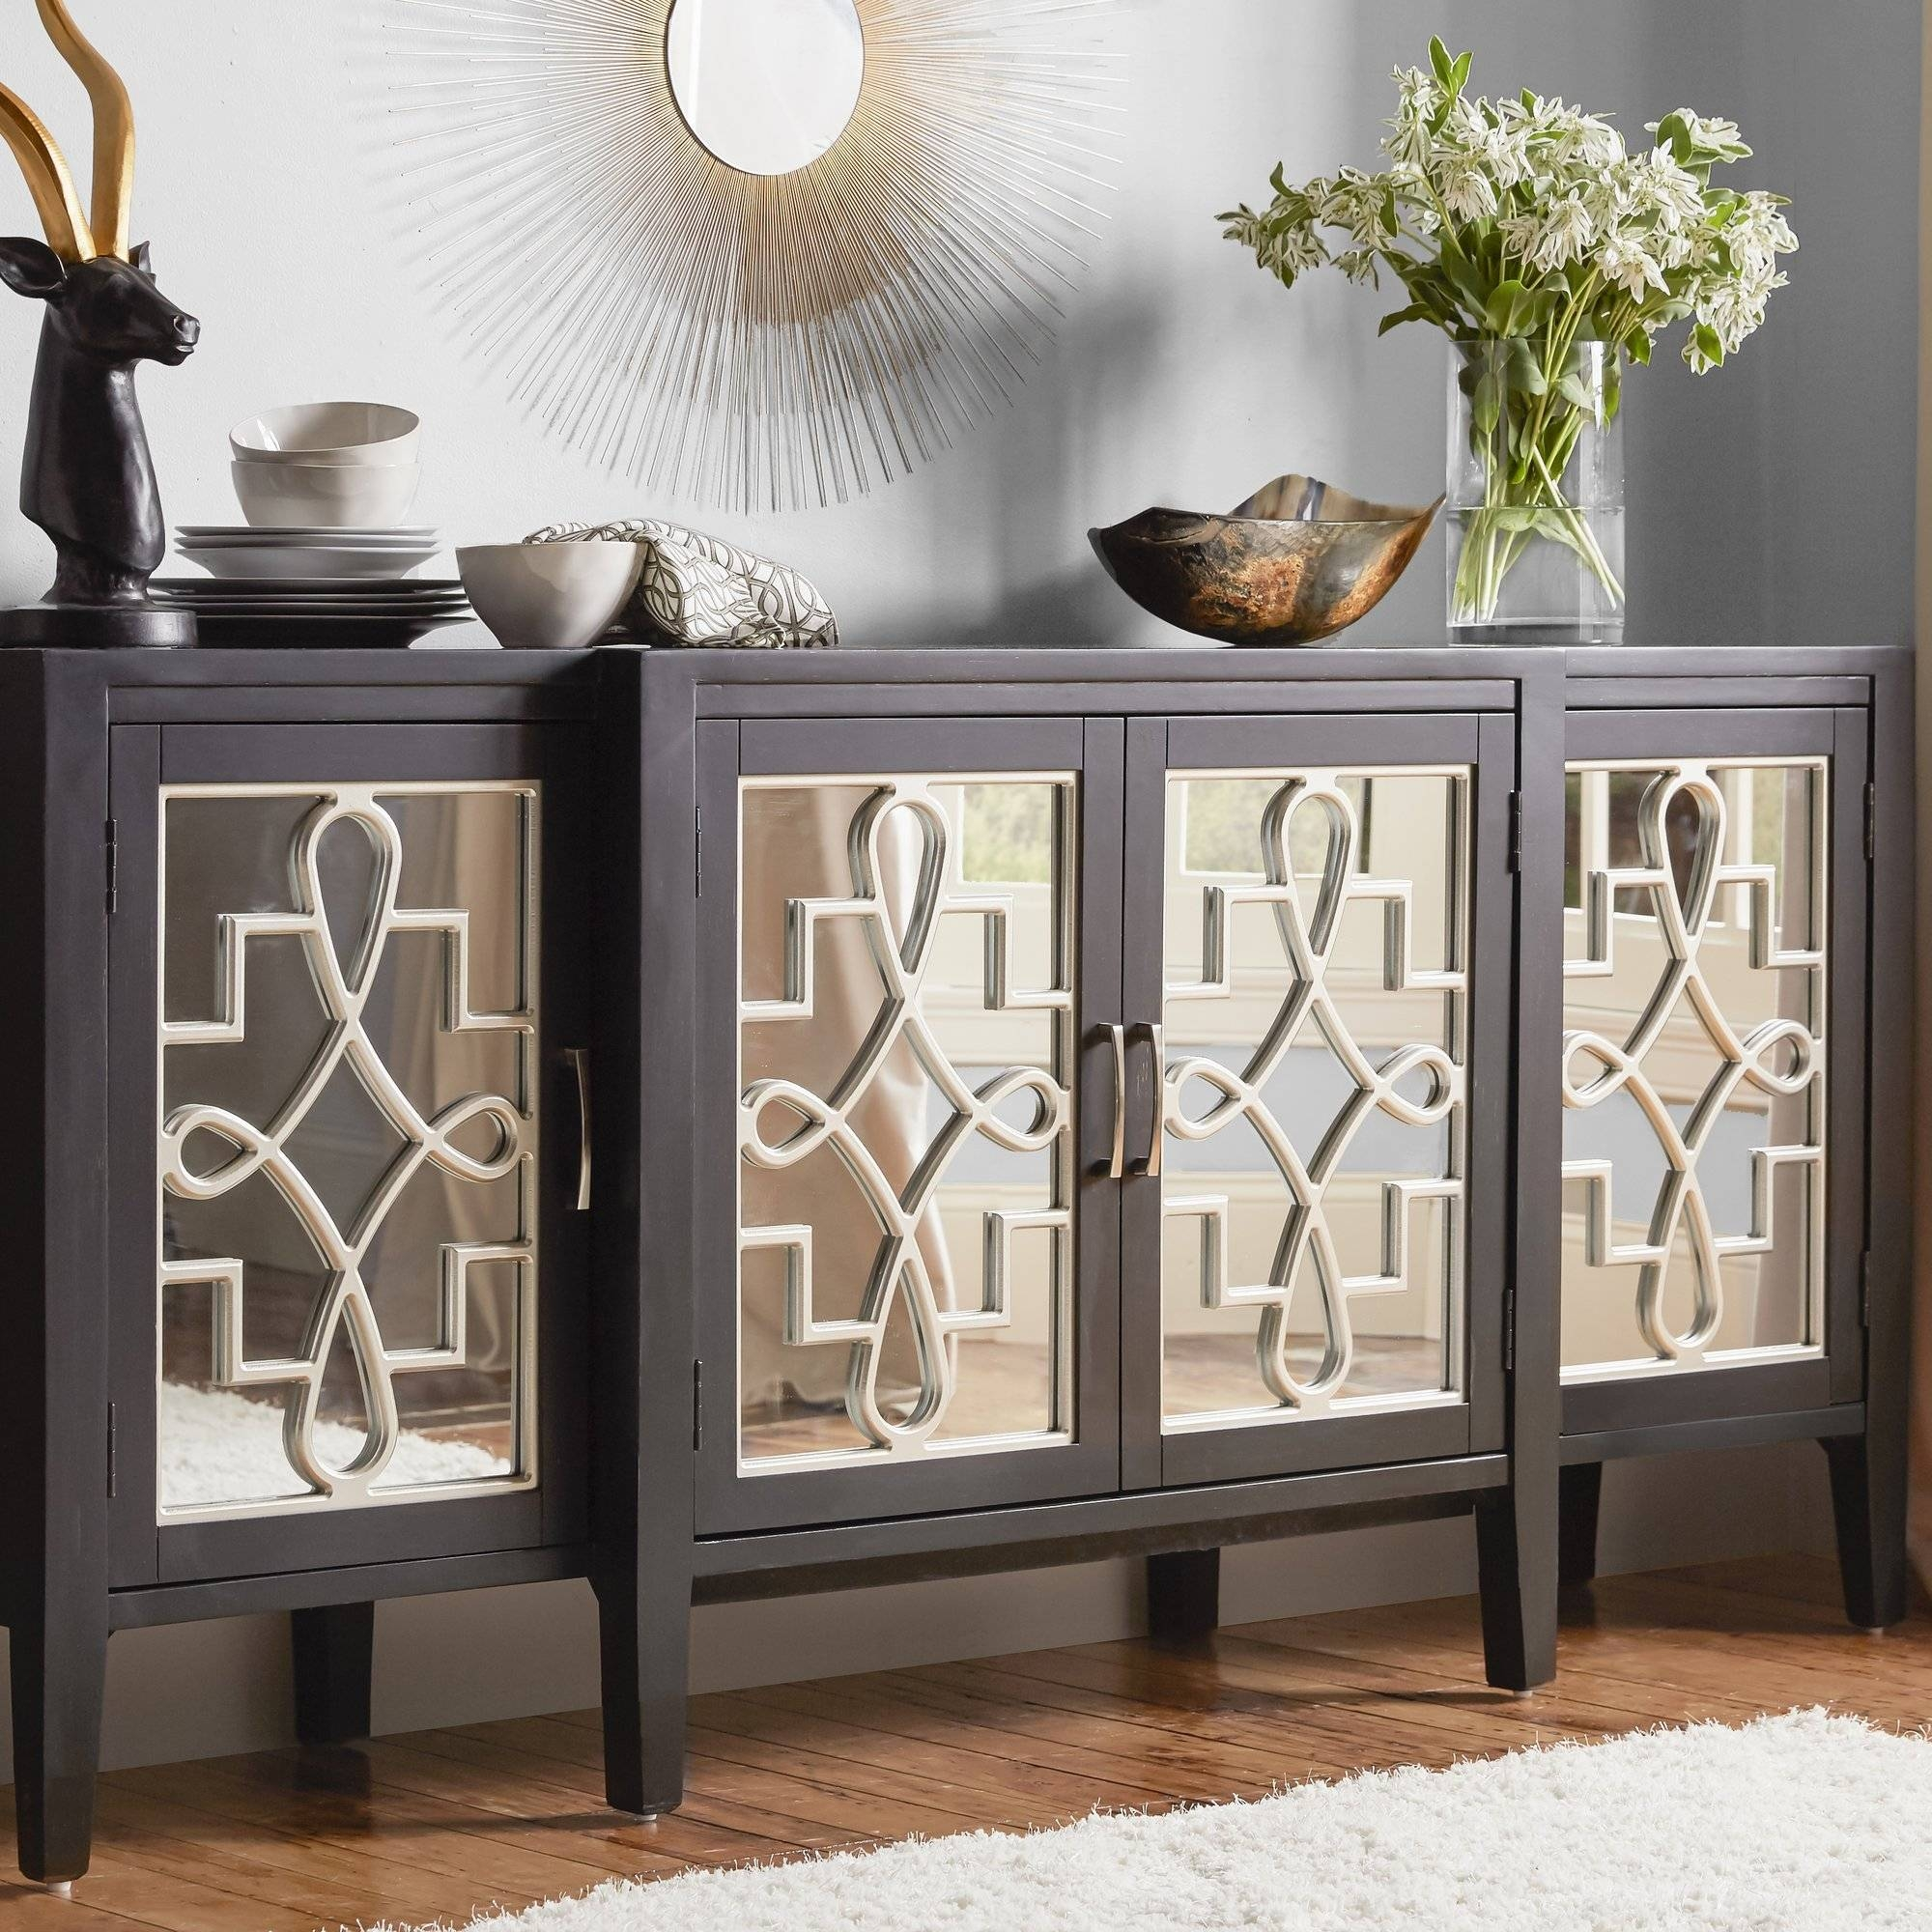 Furniture: Mirrored Buffet Sideboard | Distressed Sideboard inside Mirrored Sideboards (Image 9 of 30)